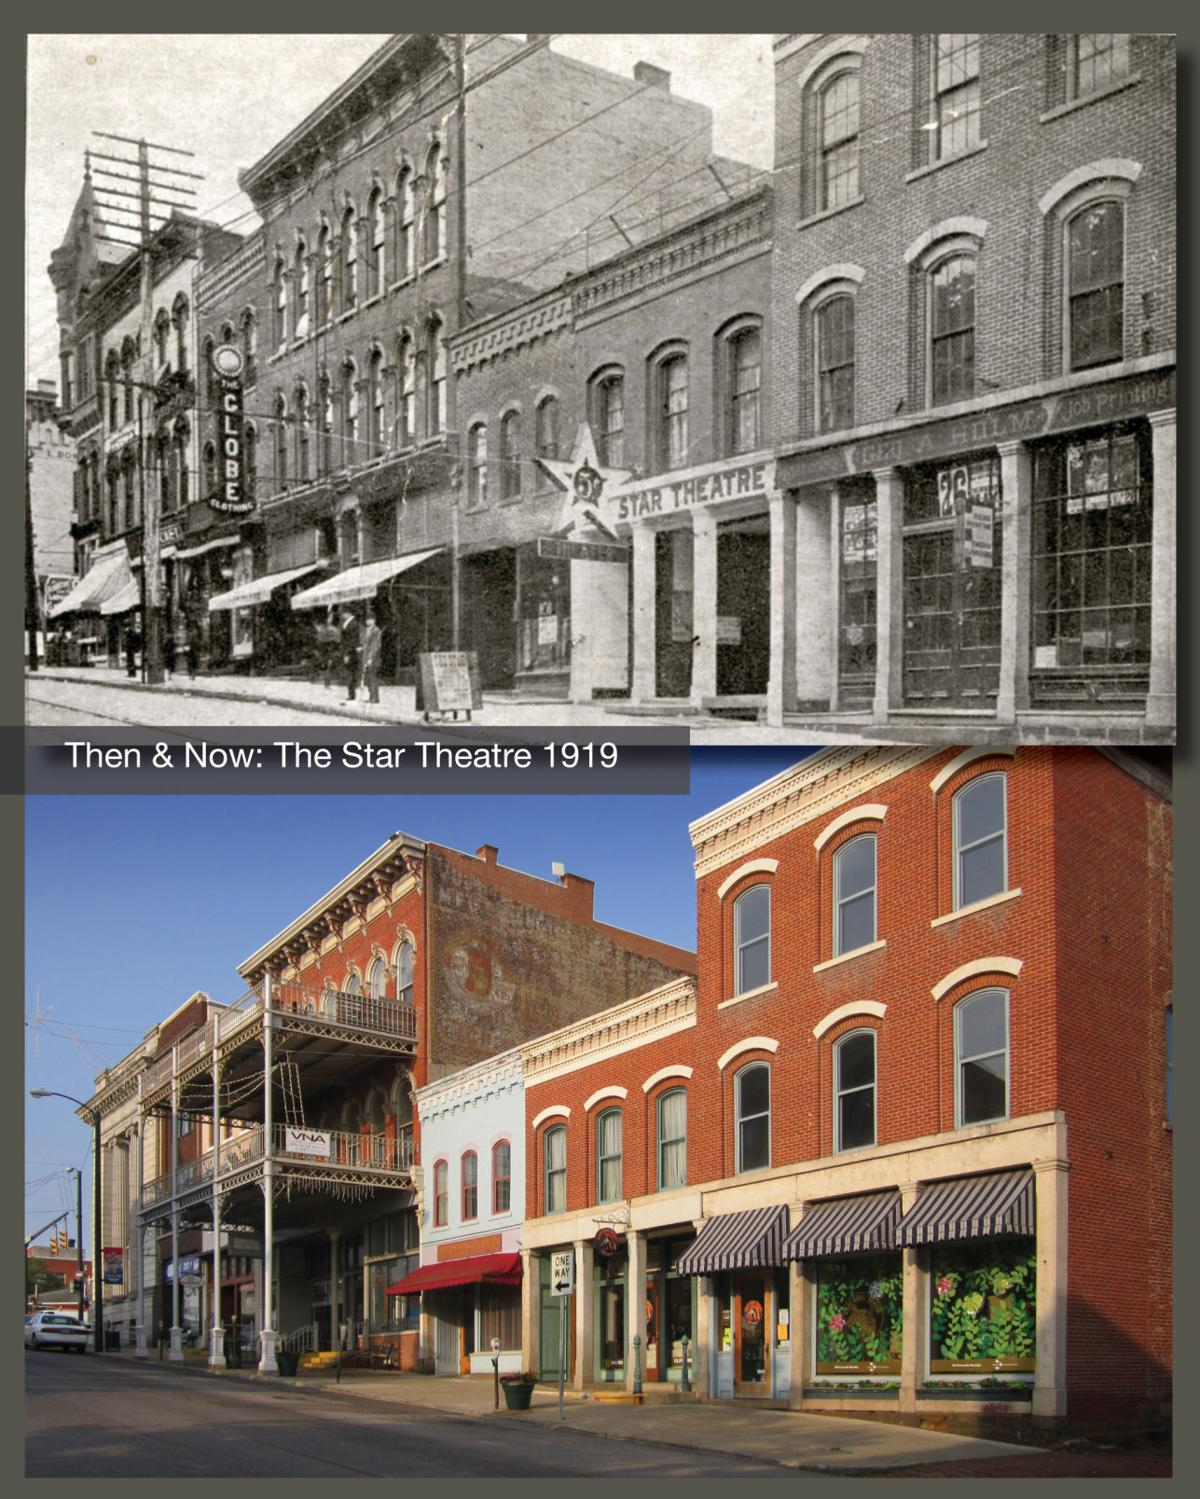 Then & Now: The Star Theatre